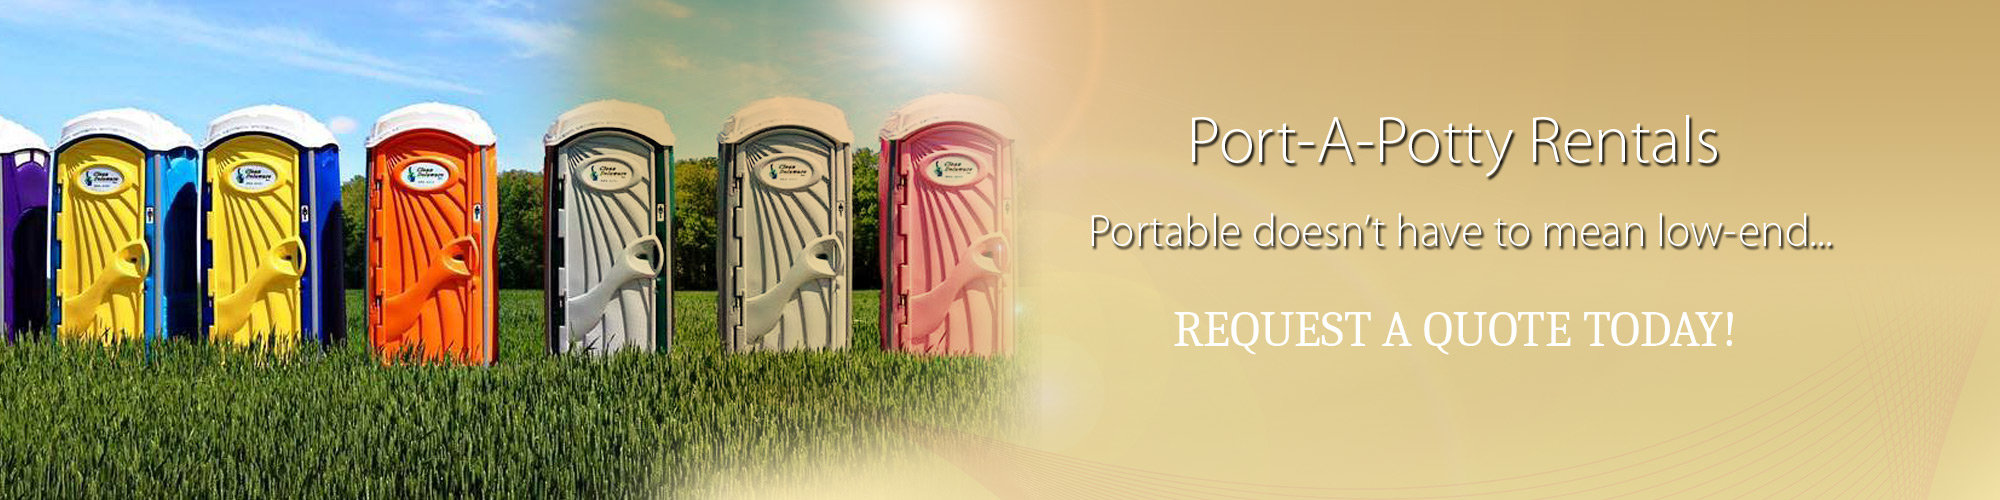 Port-A-Potty Rentals